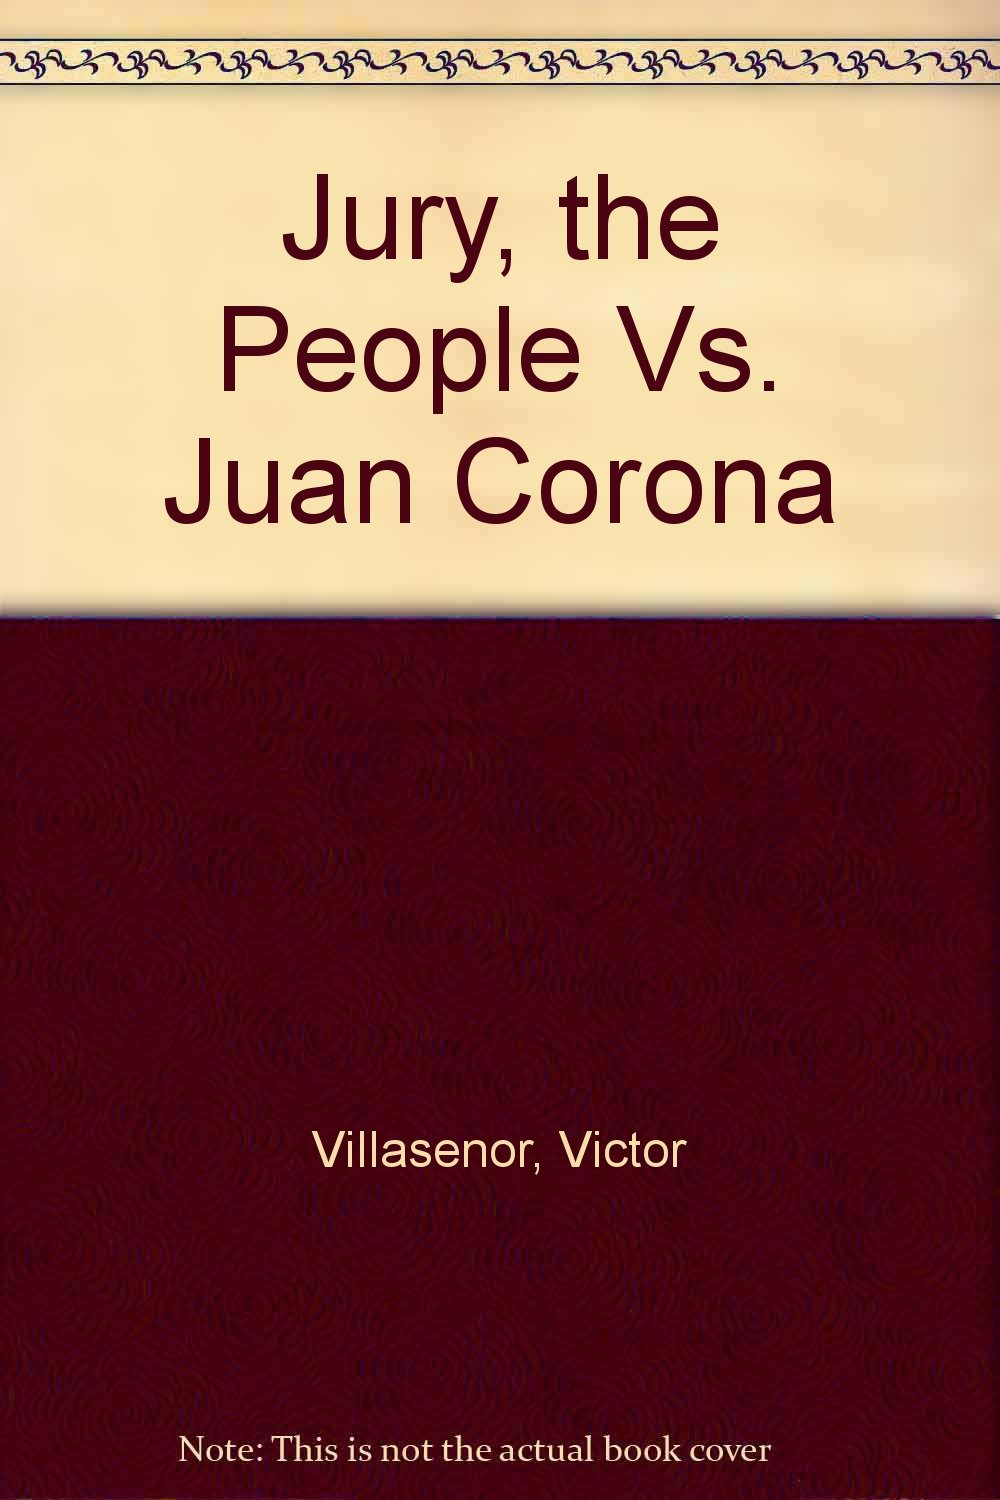 jury the people vs juan corona victor villasenor jury the people vs juan corona victor villasenor 9780316903004 com books